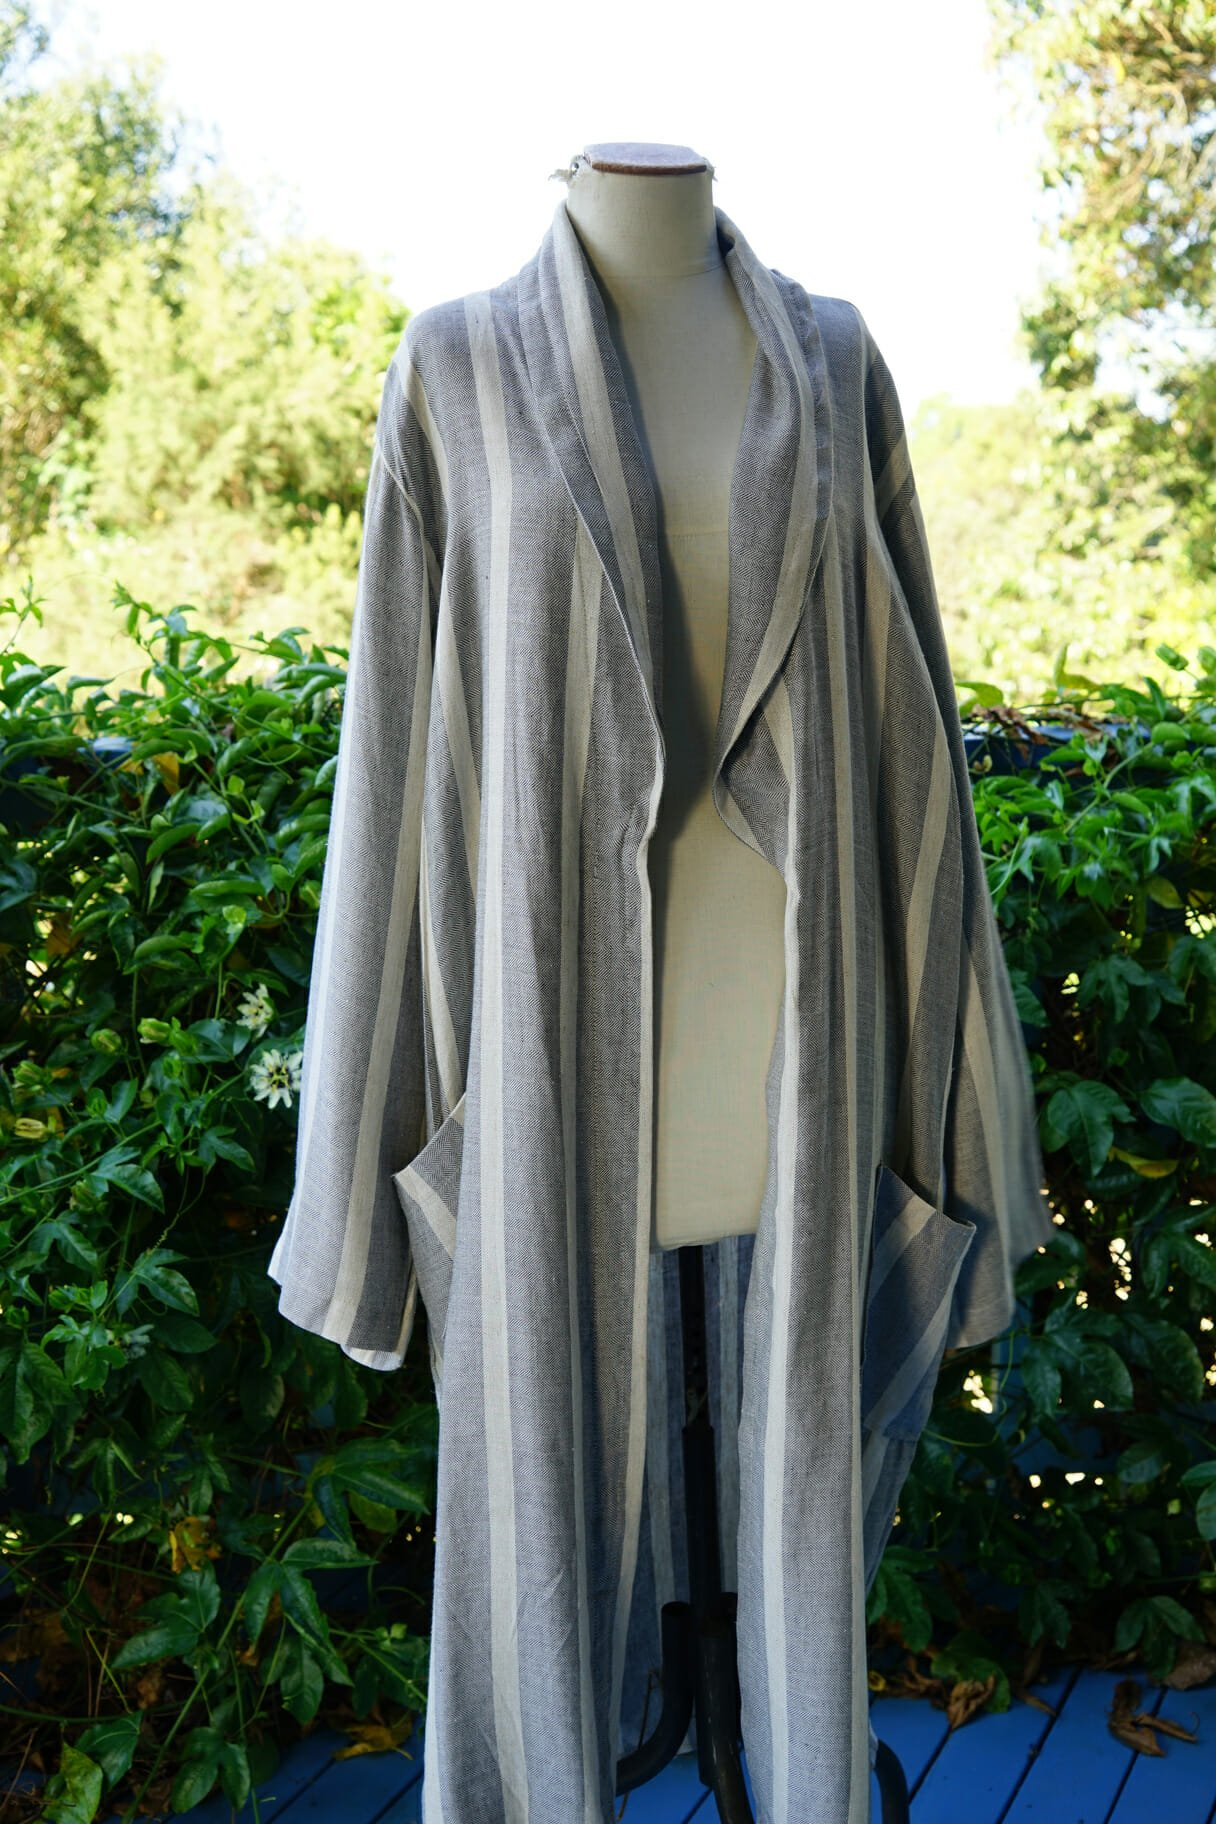 Poppy Linen Bath Robe The Dancing Pixie